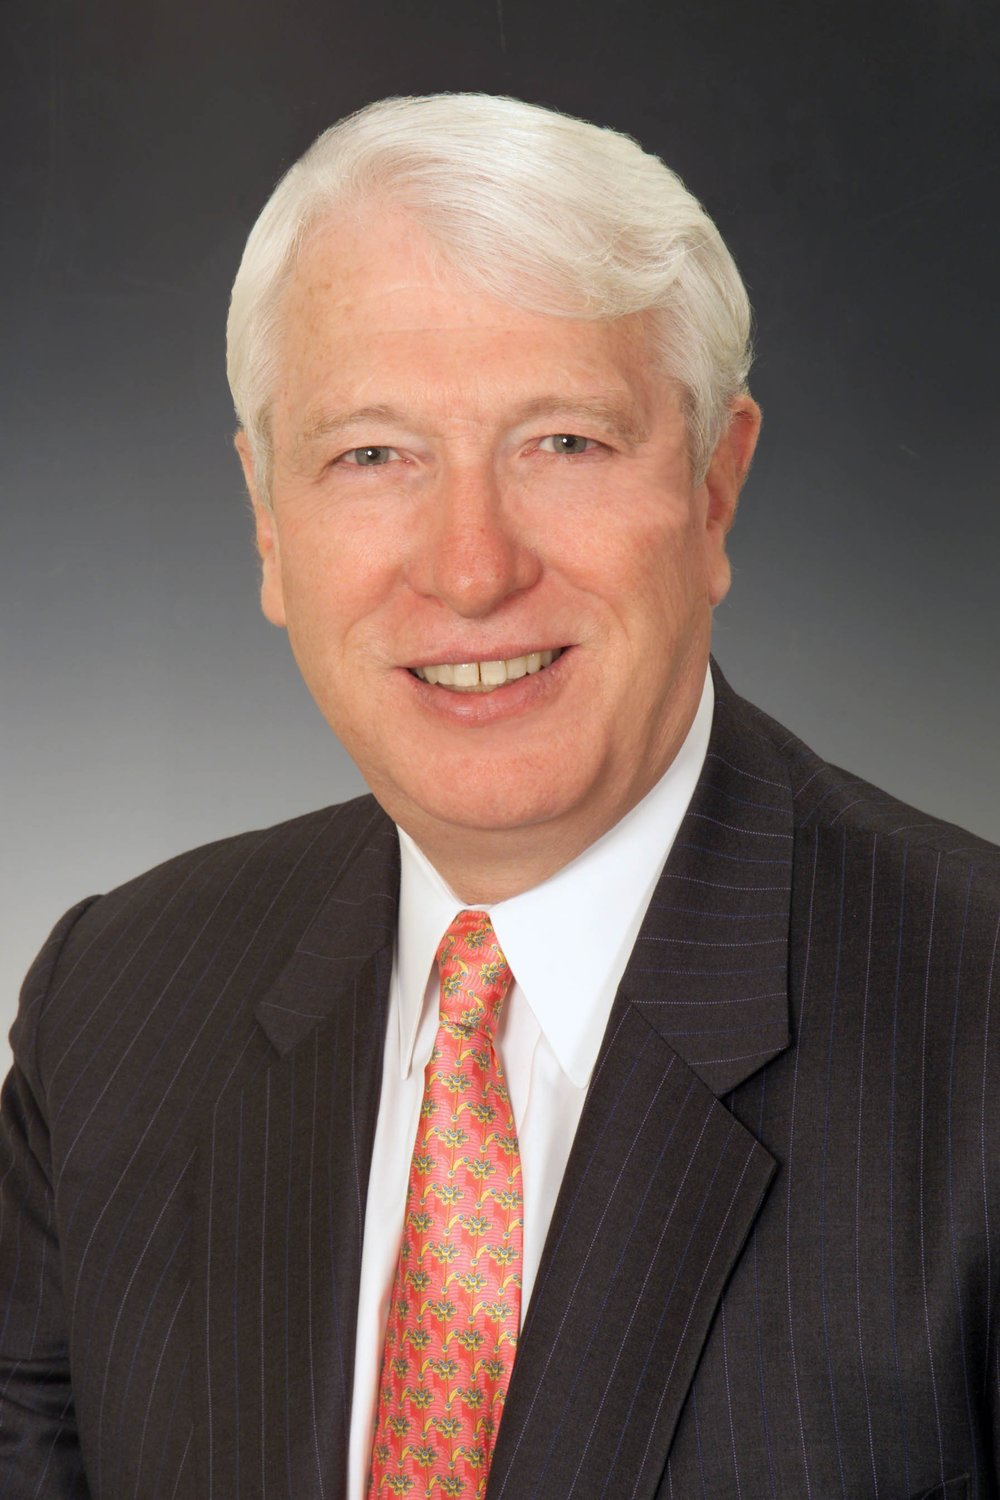 Michael N. Harreld Immediate Past President, PNC Bank, Greater Washington Area